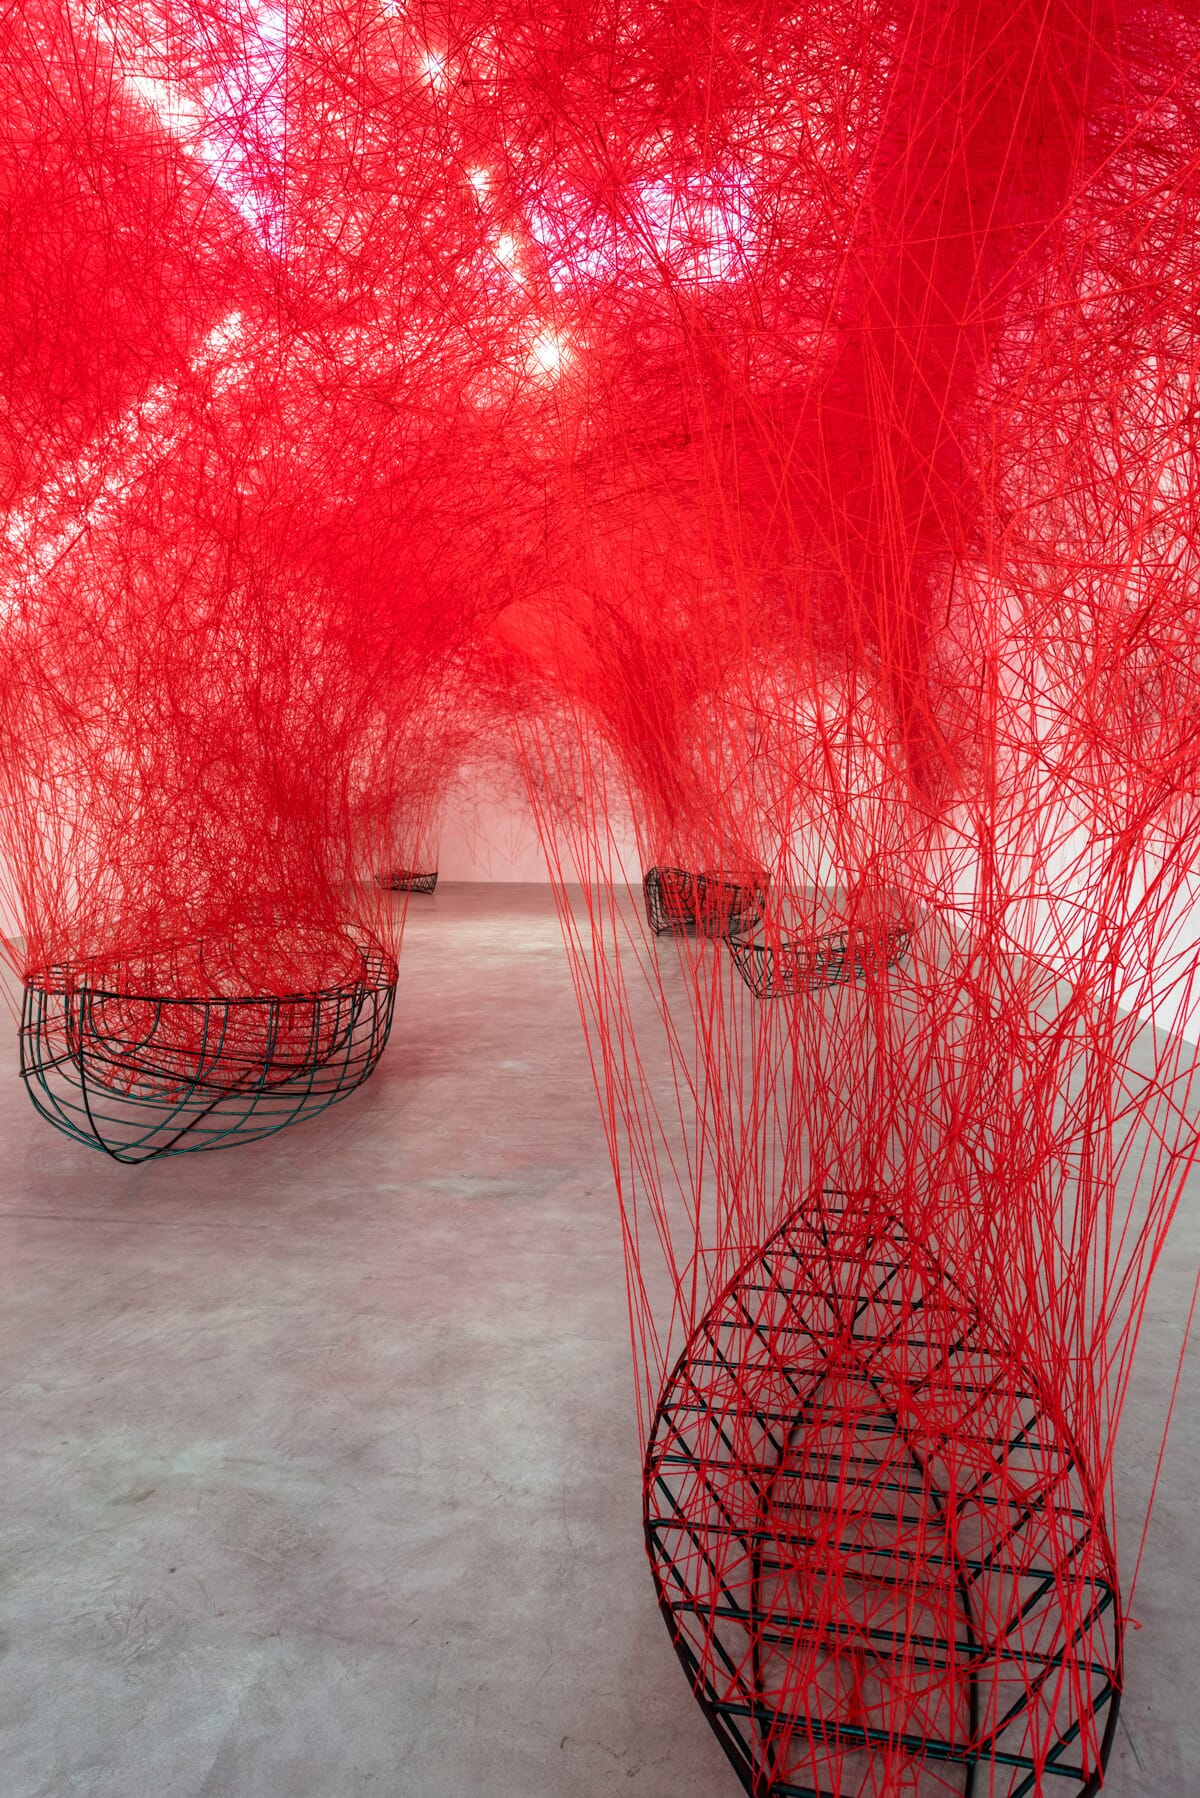 chiharu-shiota-uncertain-journey-2016-installation-view-courtesy-the-artist-and-blainsouthern-photo-christian-glaeser